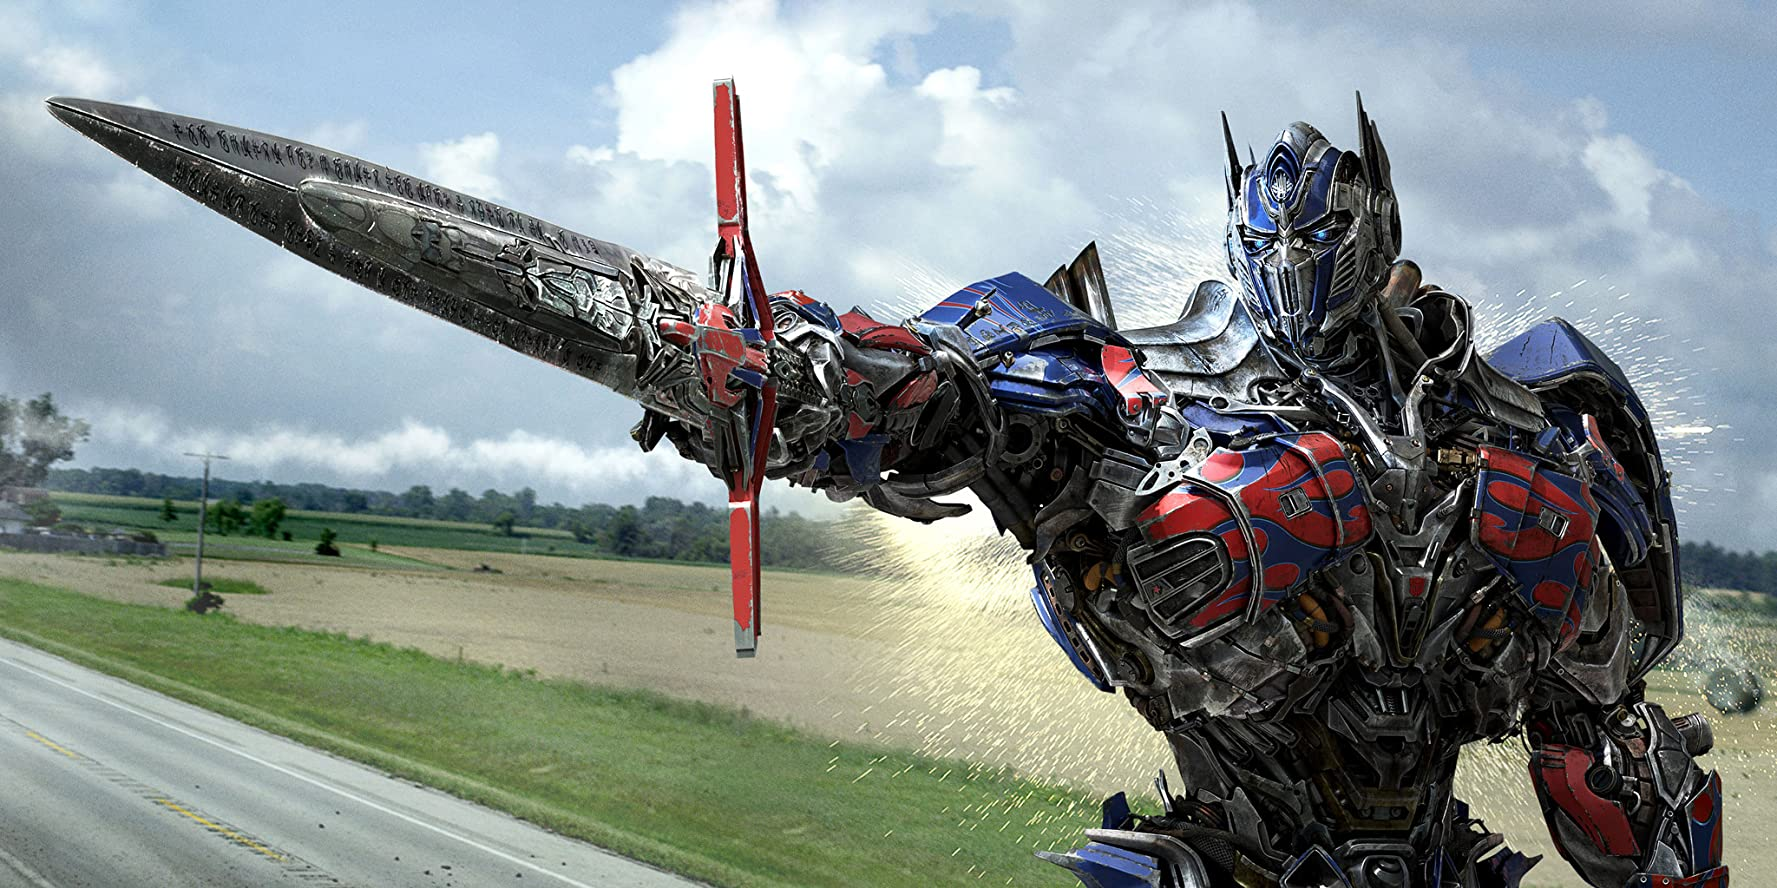 Peter Cullen in Transformers: Age of Extinction (2014)